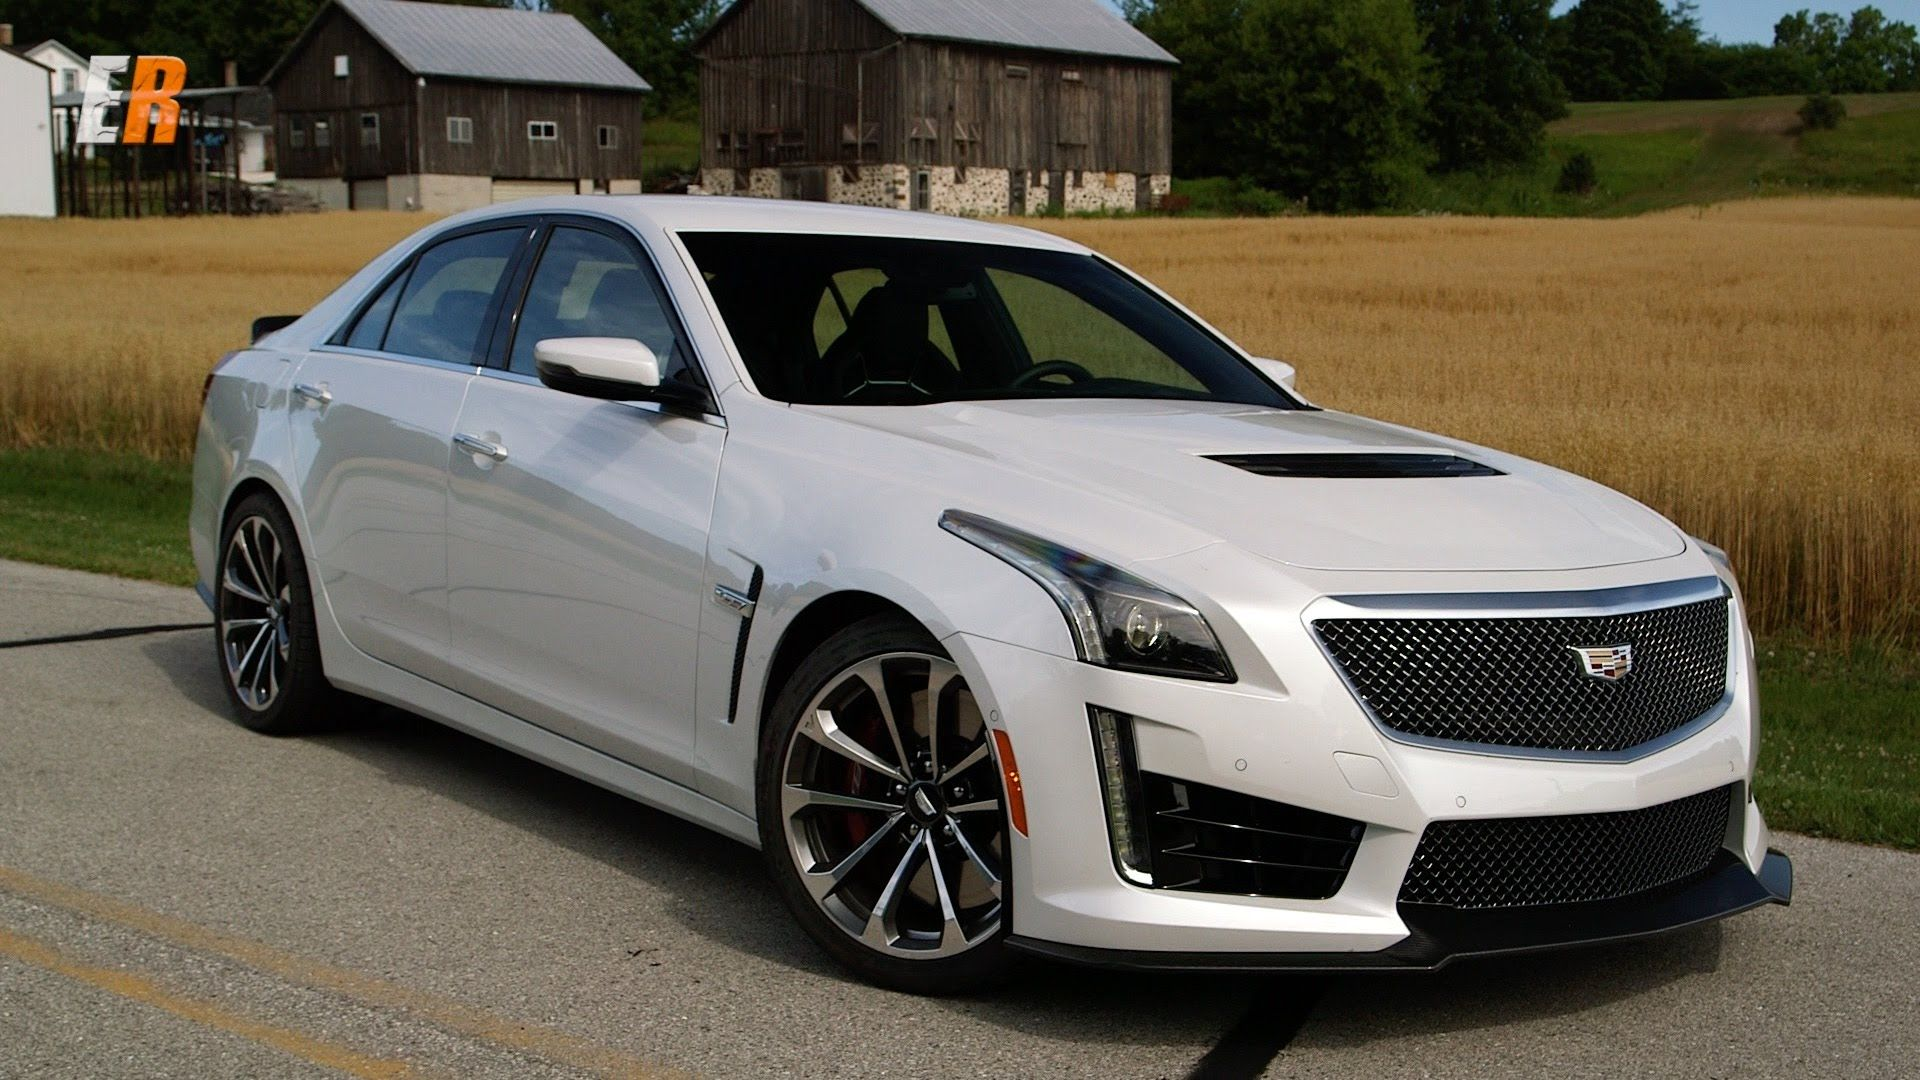 2016 cadillac cts v 640 hp road and track review road america